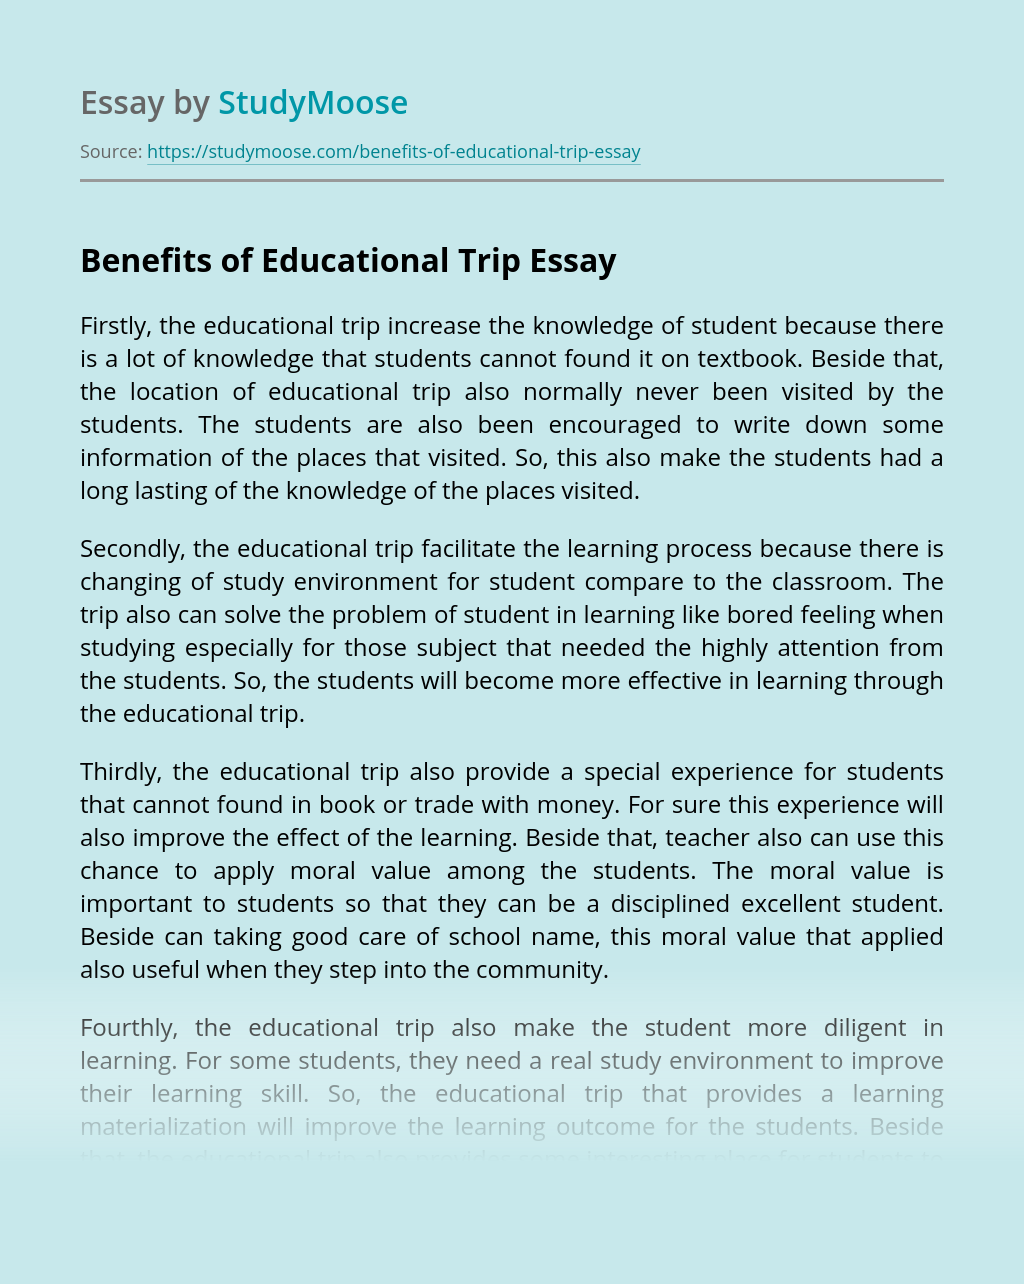 Benefits of Educational Trip